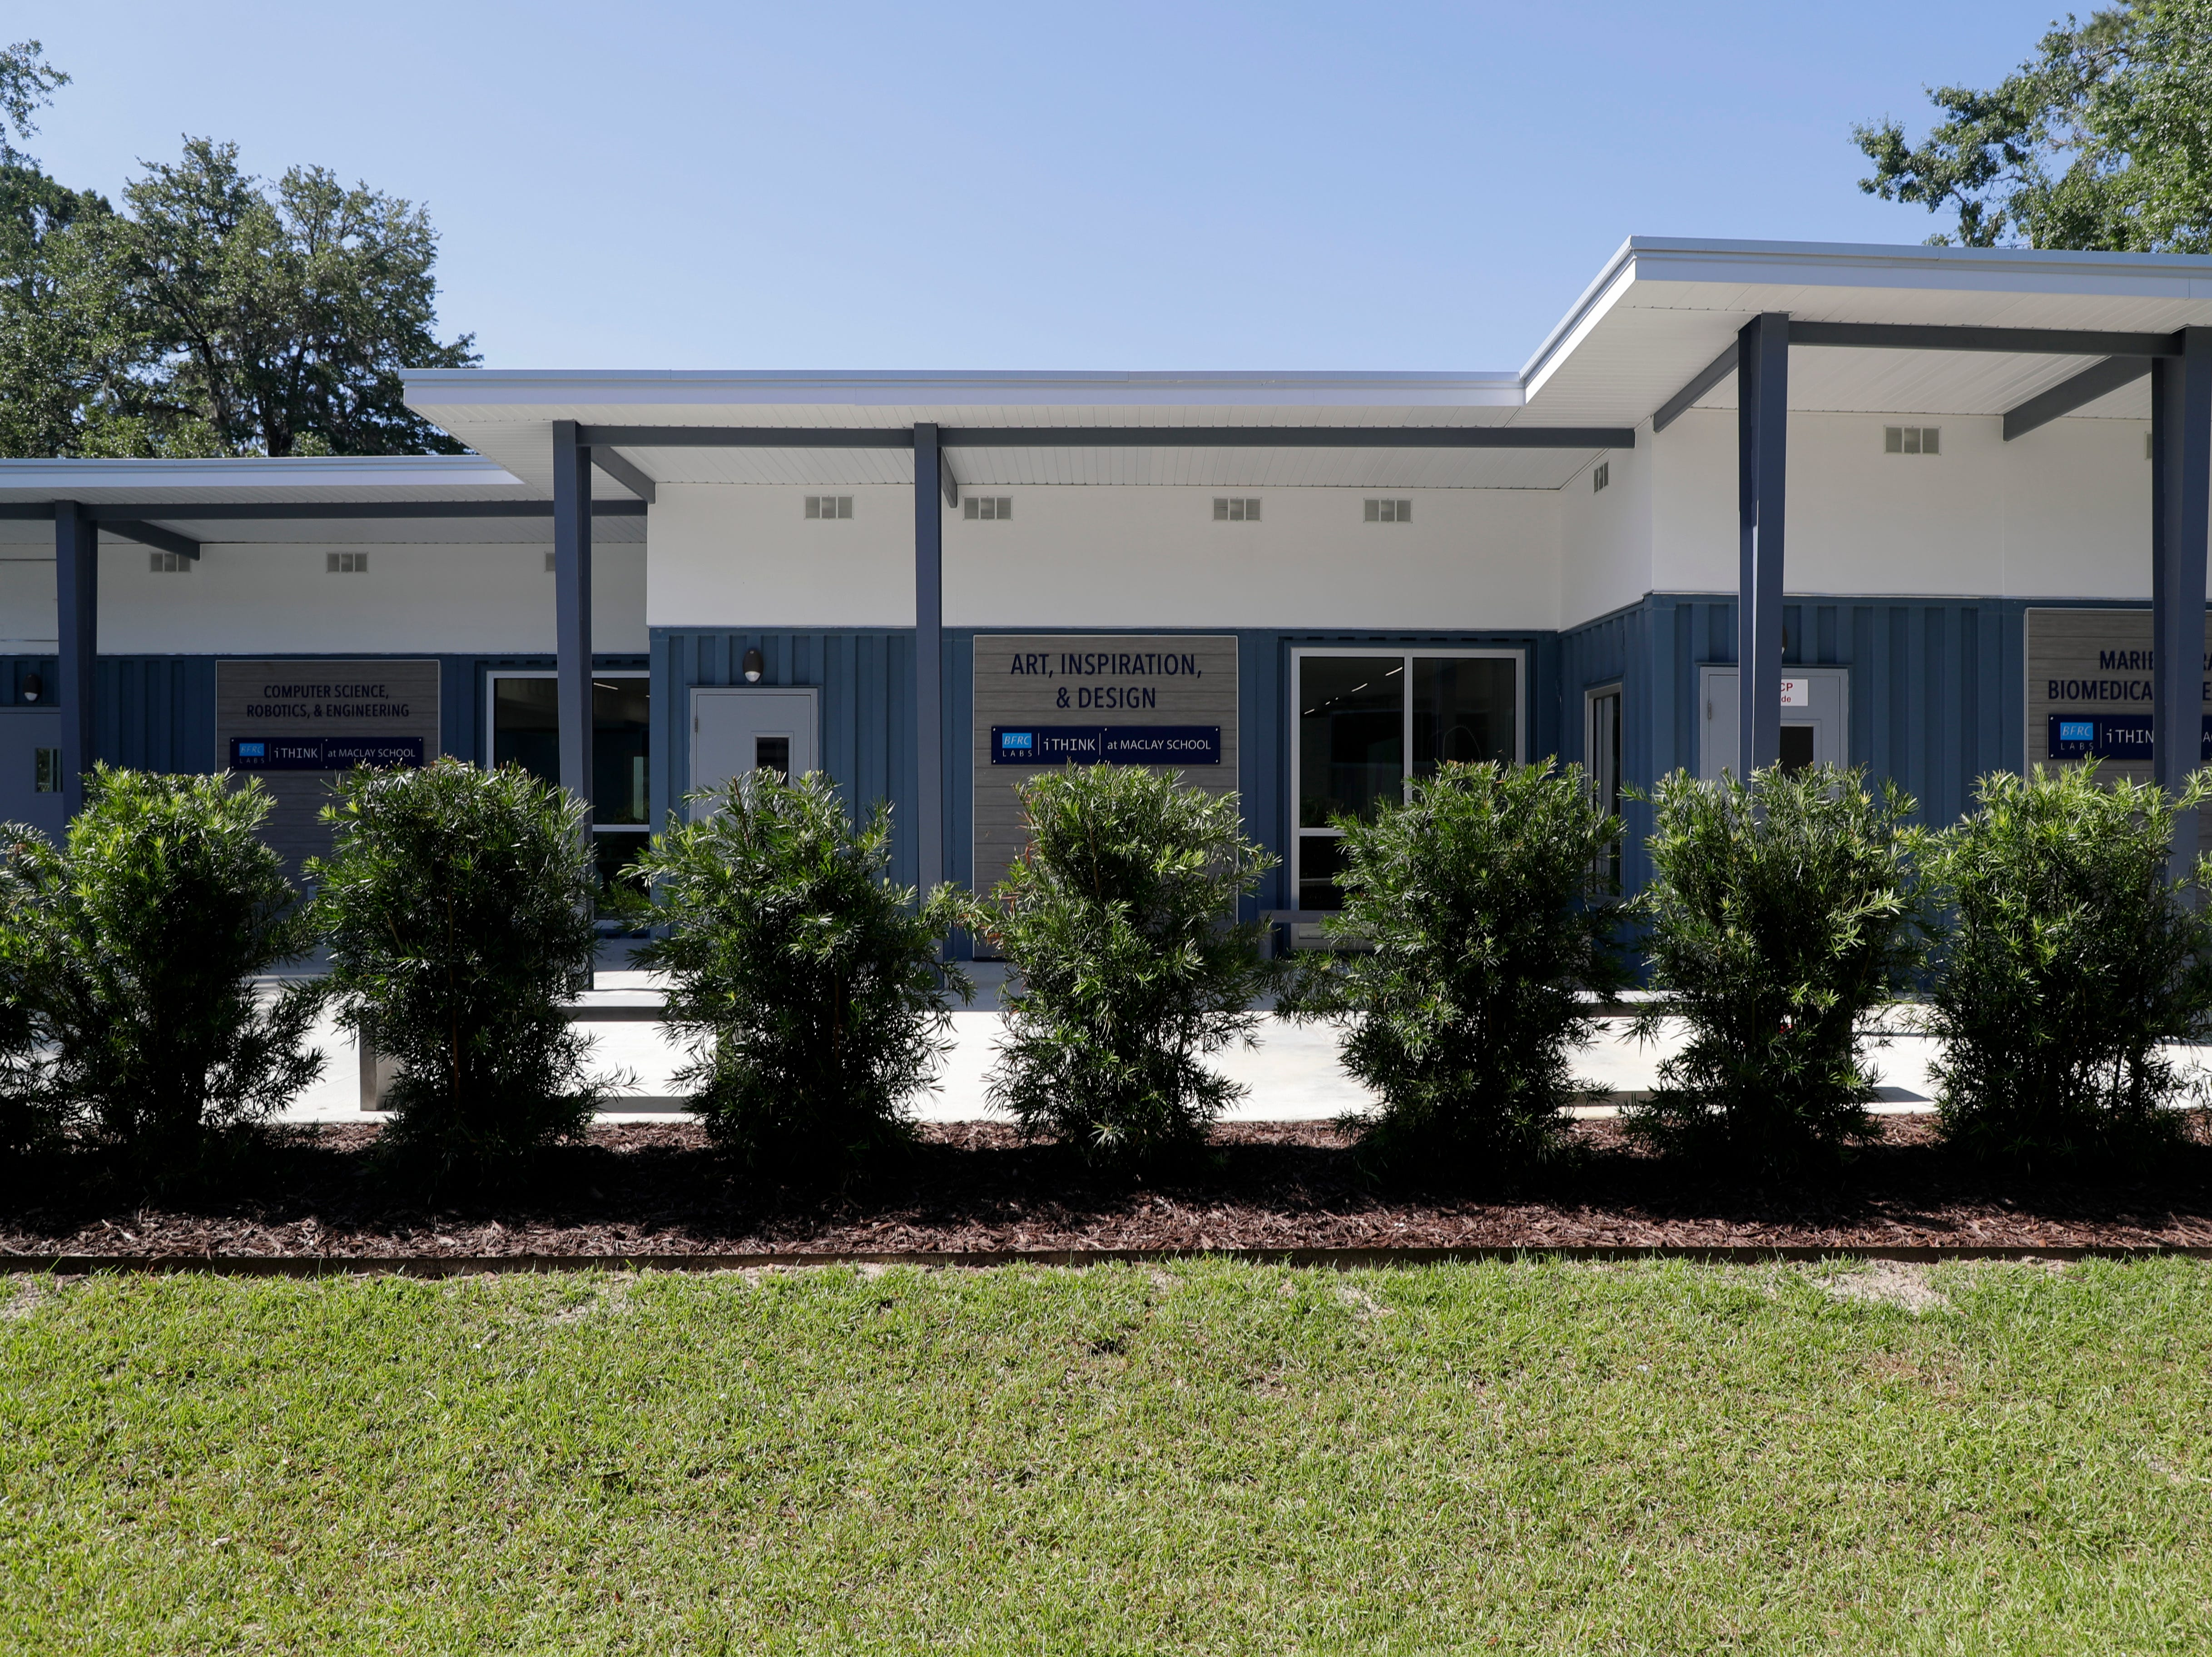 Maclay School recently opened their new Beck Family Research Center, a group of three classrooms built from recycled shipping containers.